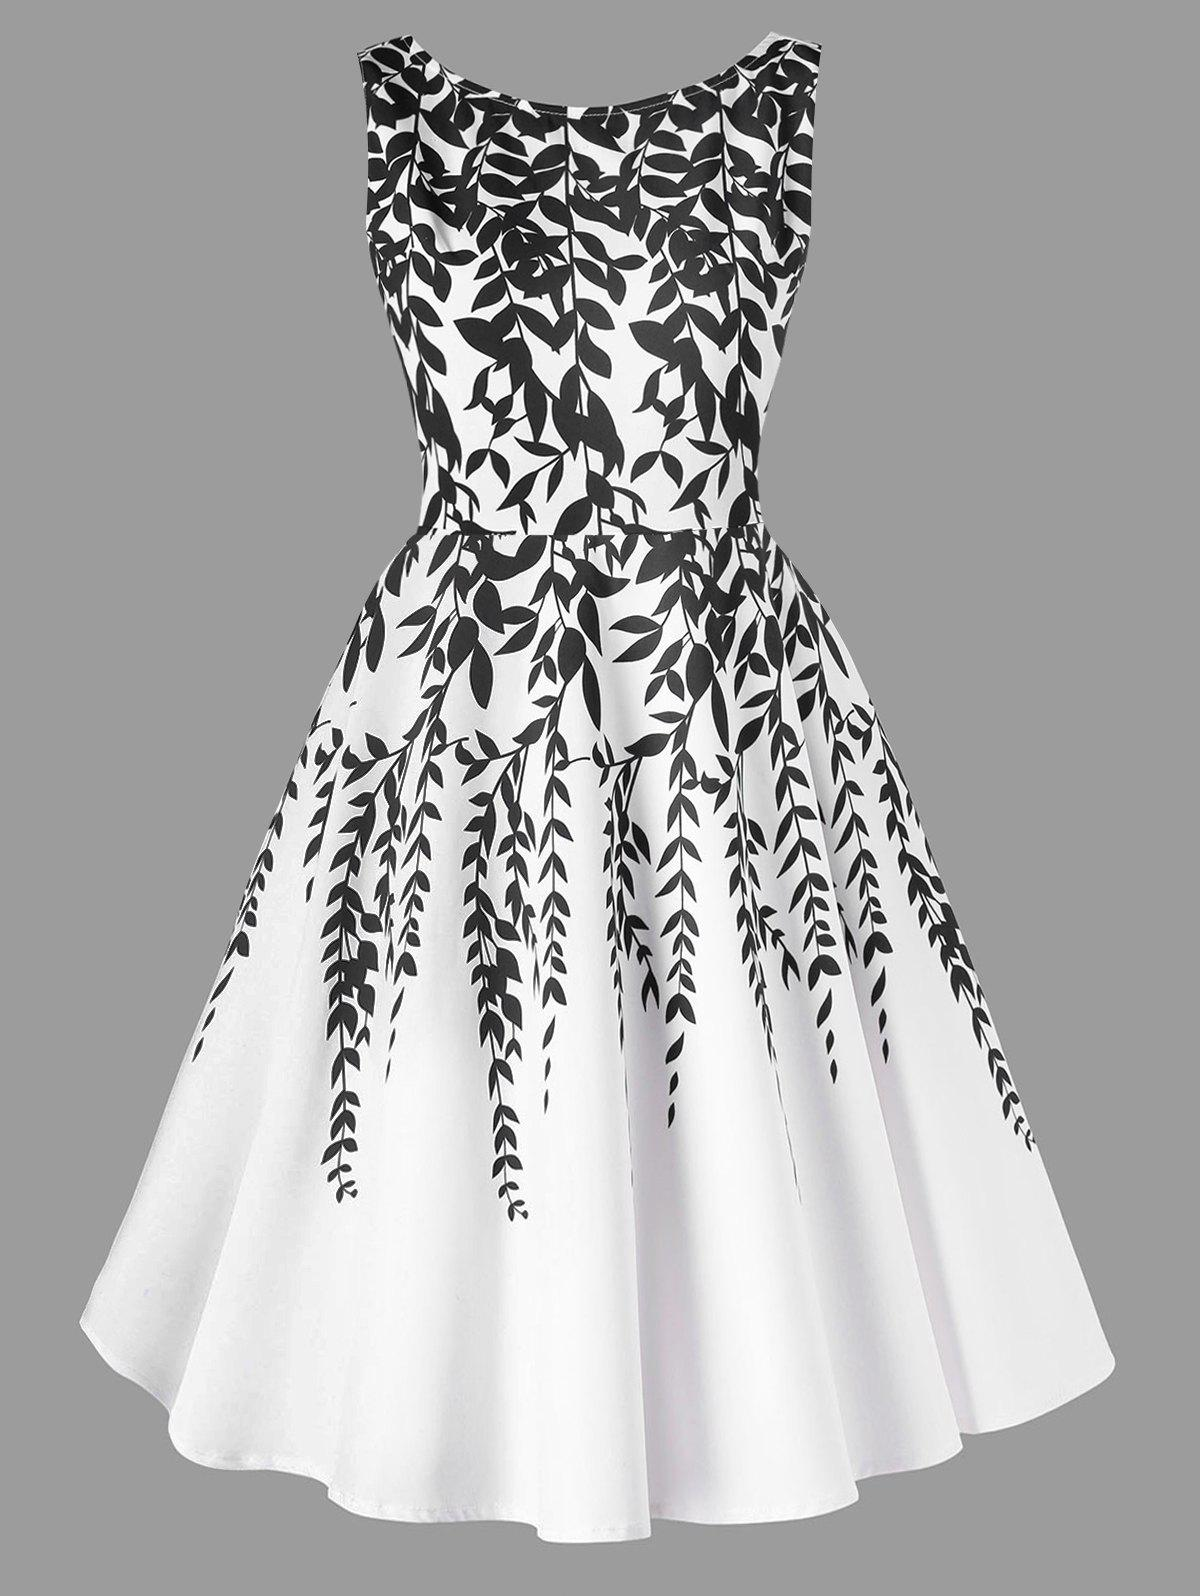 Salix Leaf Printed Sleeveless Flare Dress - WHITE L